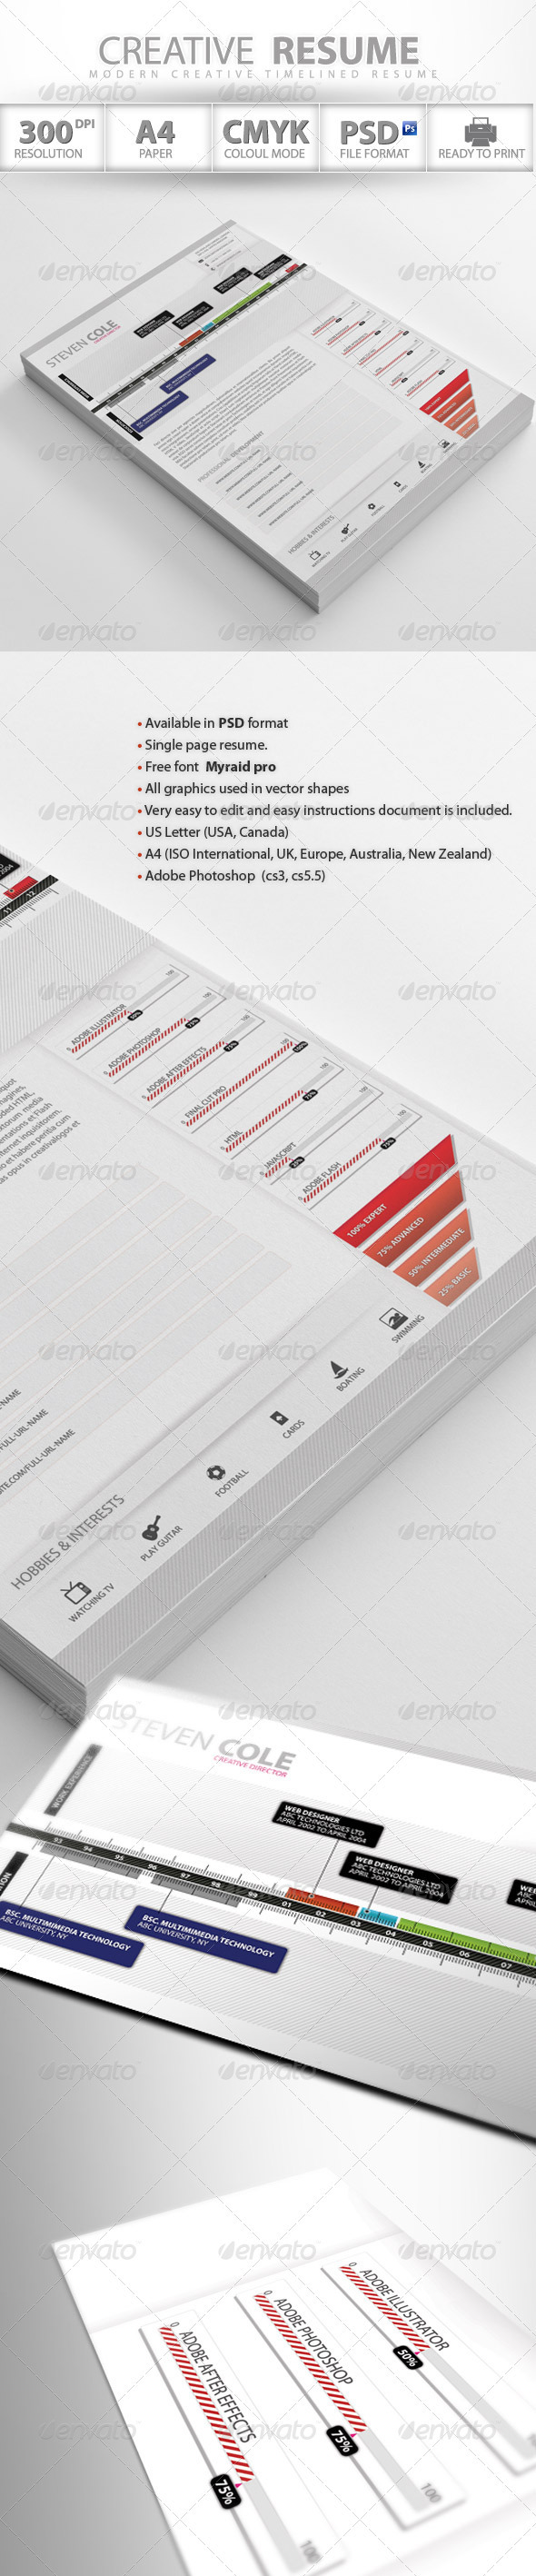 GraphicRiver Professional Creative Resume 2983521